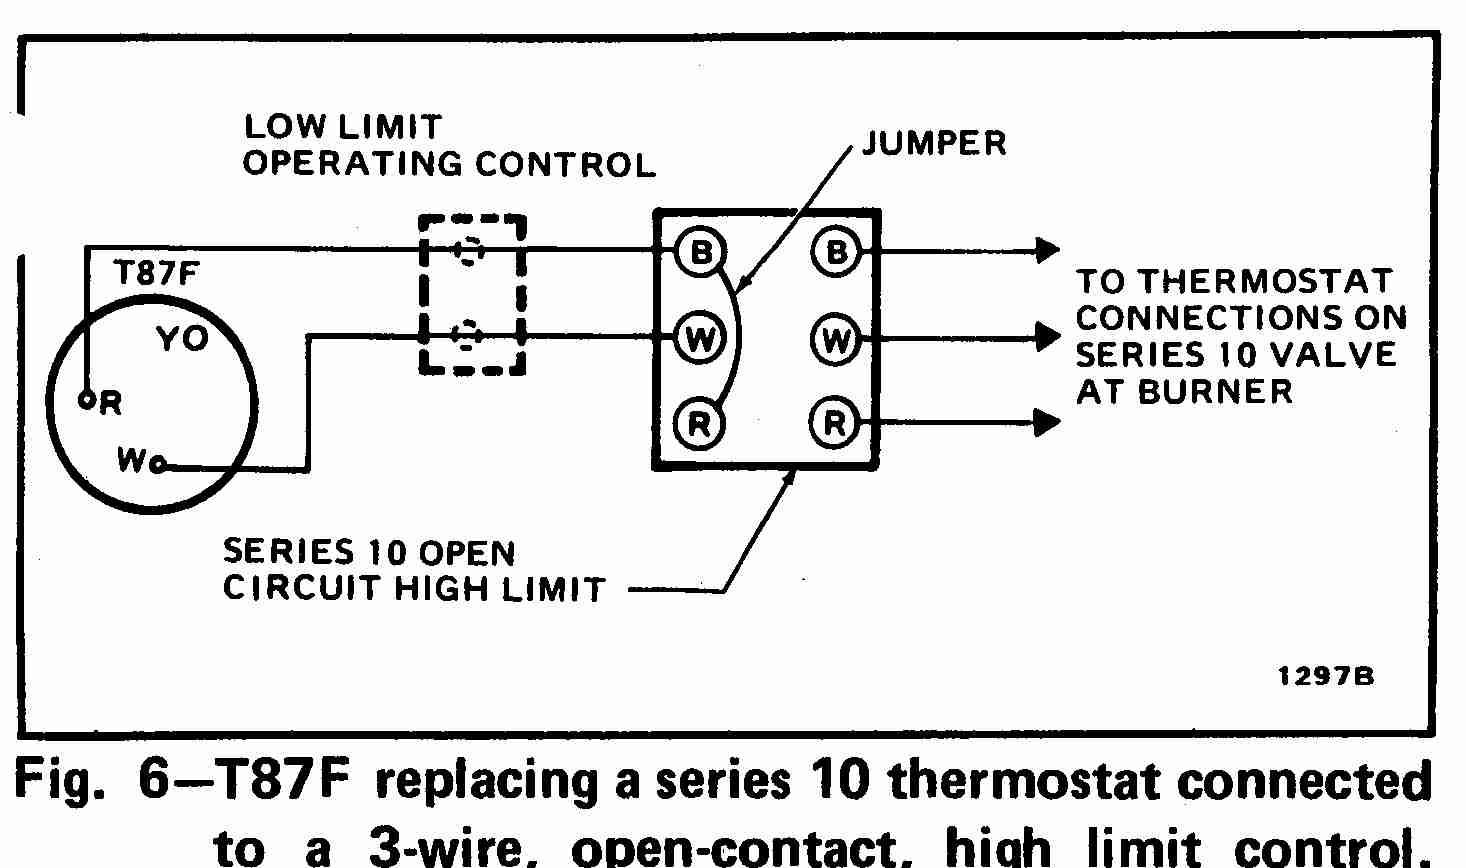 TT_T87F_0002_3WHL_DJF room thermostat wiring diagrams for hvac systems wire diagram for honeywell thermostat at arjmand.co